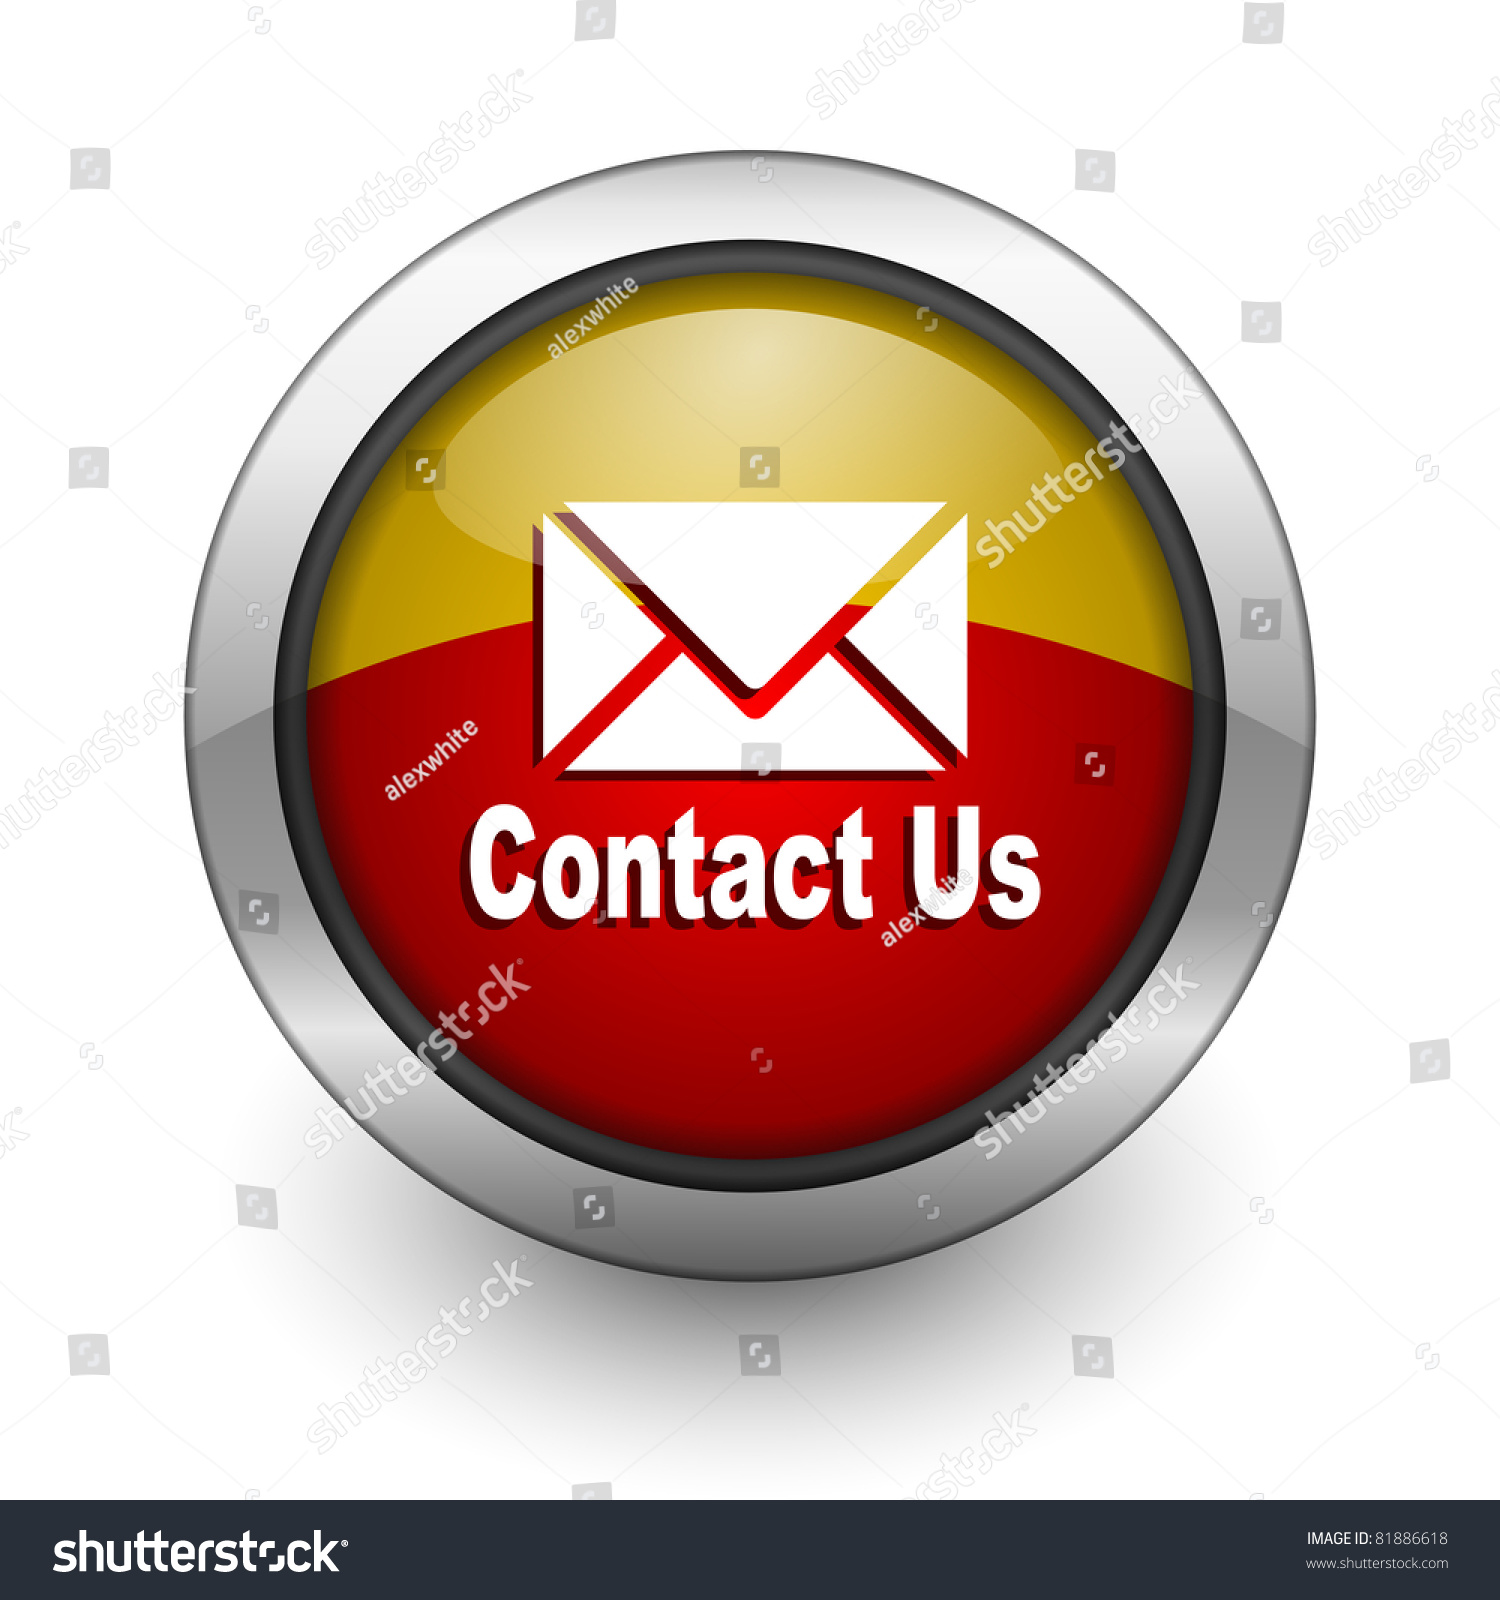 Email Icon Isolated On Special Yellow Square Button Abstract Contact Us Red Yellow Aqua Button Stock Illustration